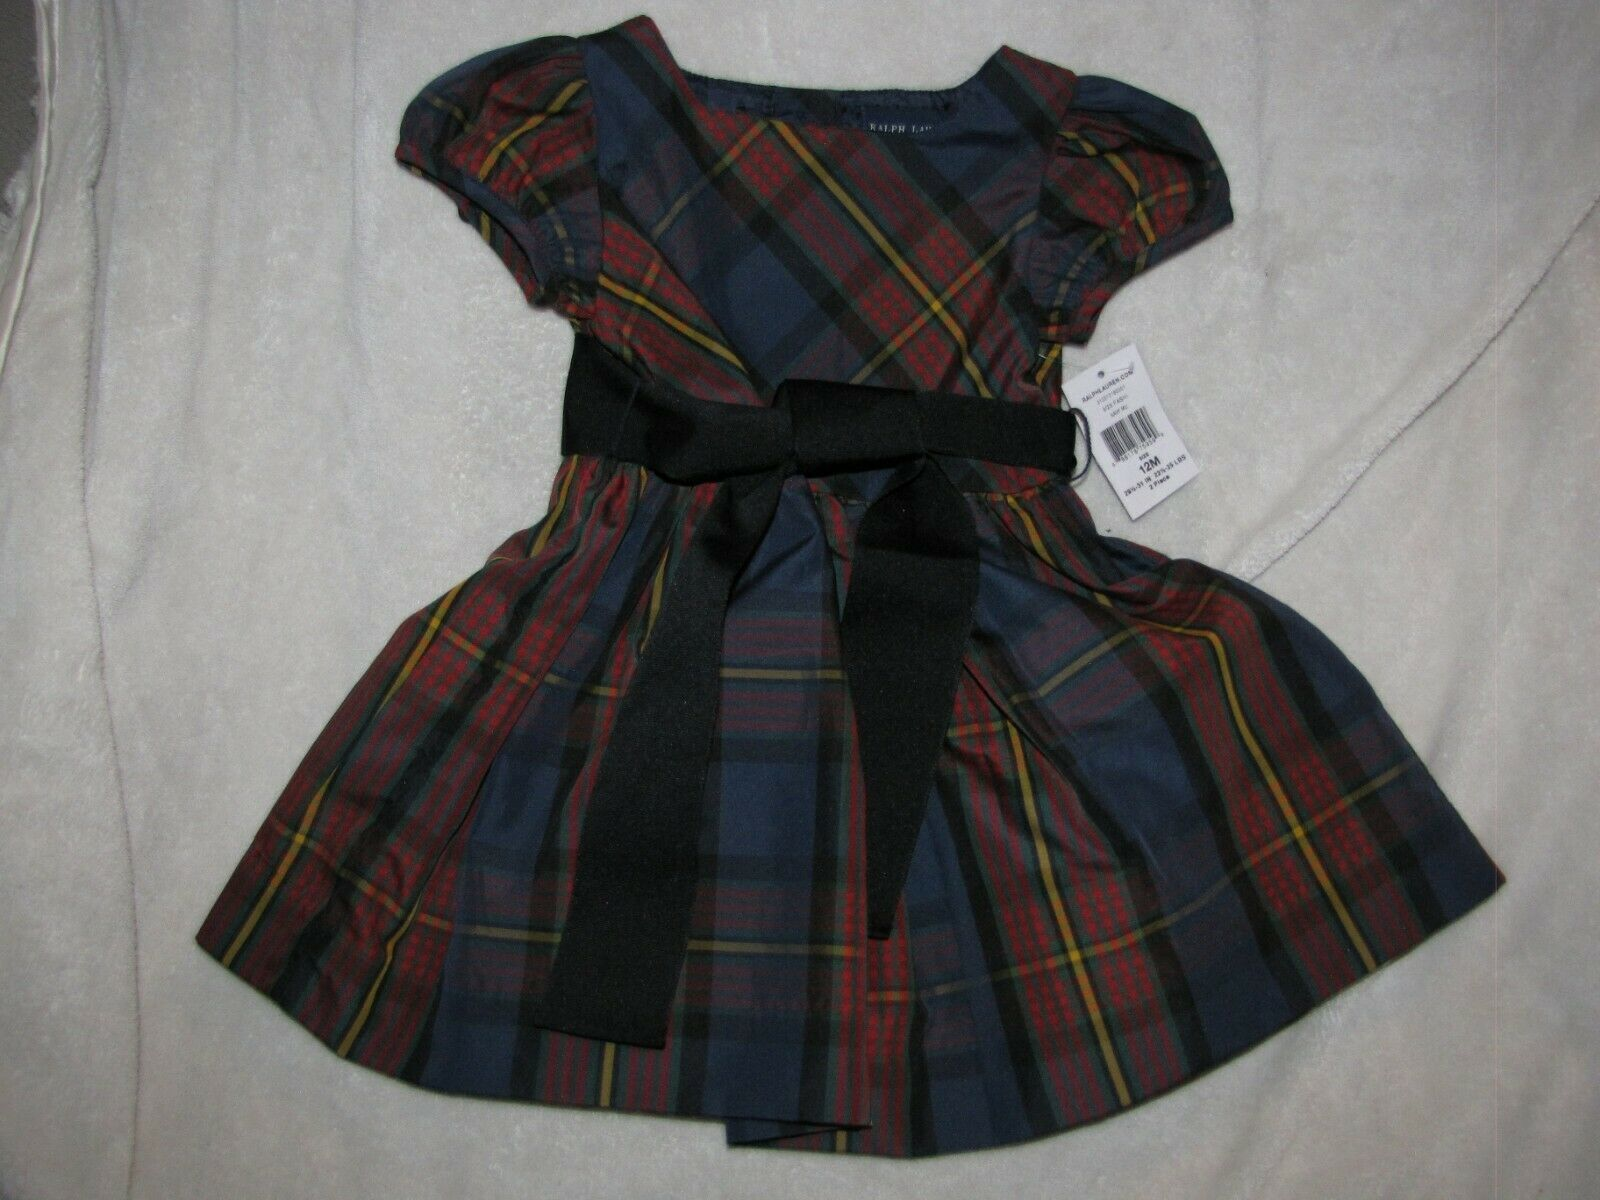 Primary image for Ralph Lauren dress size 12 months Red Tartan Plaid baby girl Xmas Holidays Lined